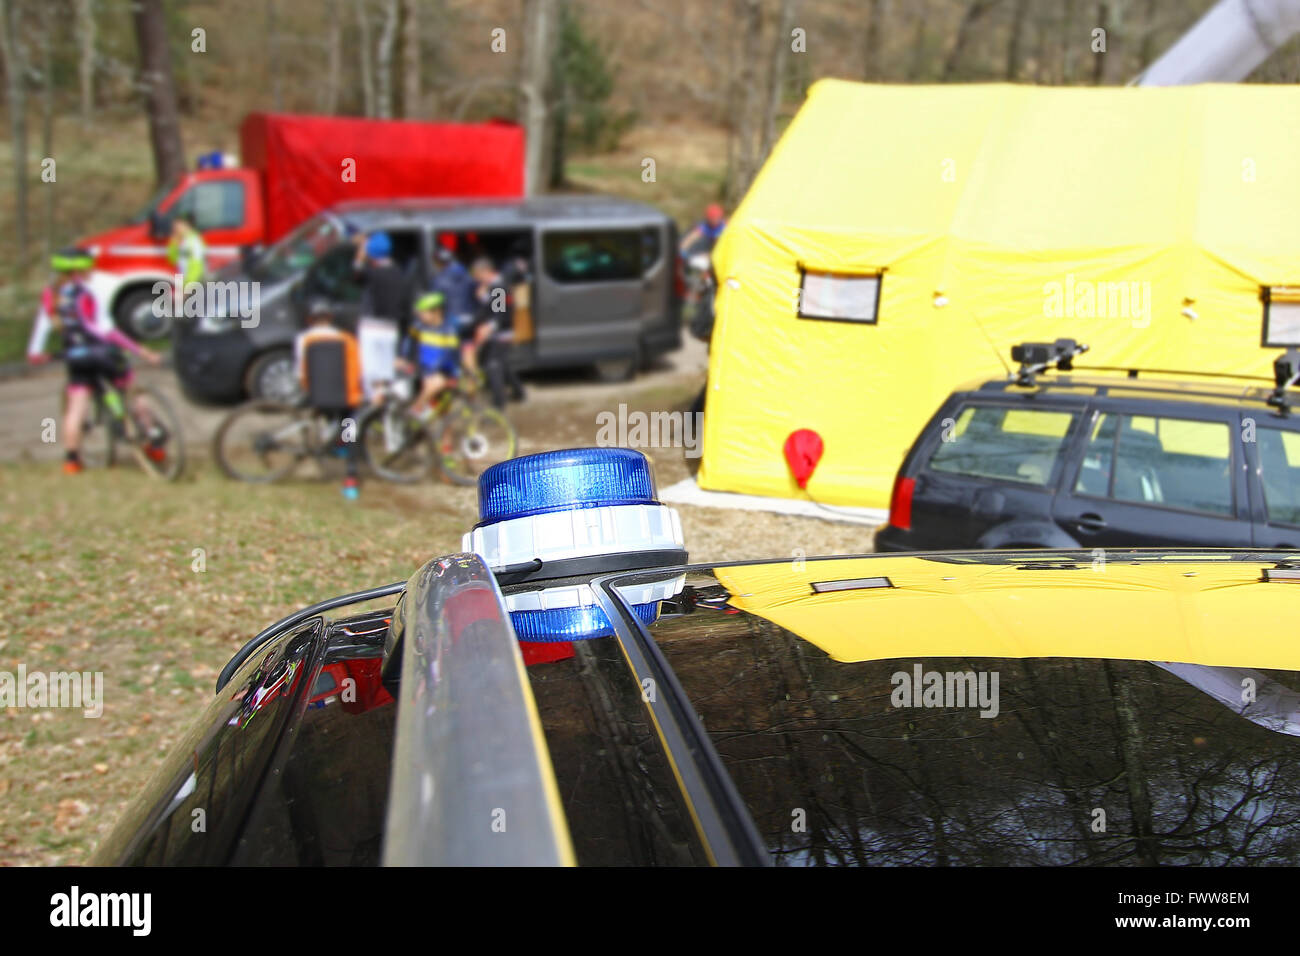 Medical care tent and vehicles at a mountain bike event - Stock Image